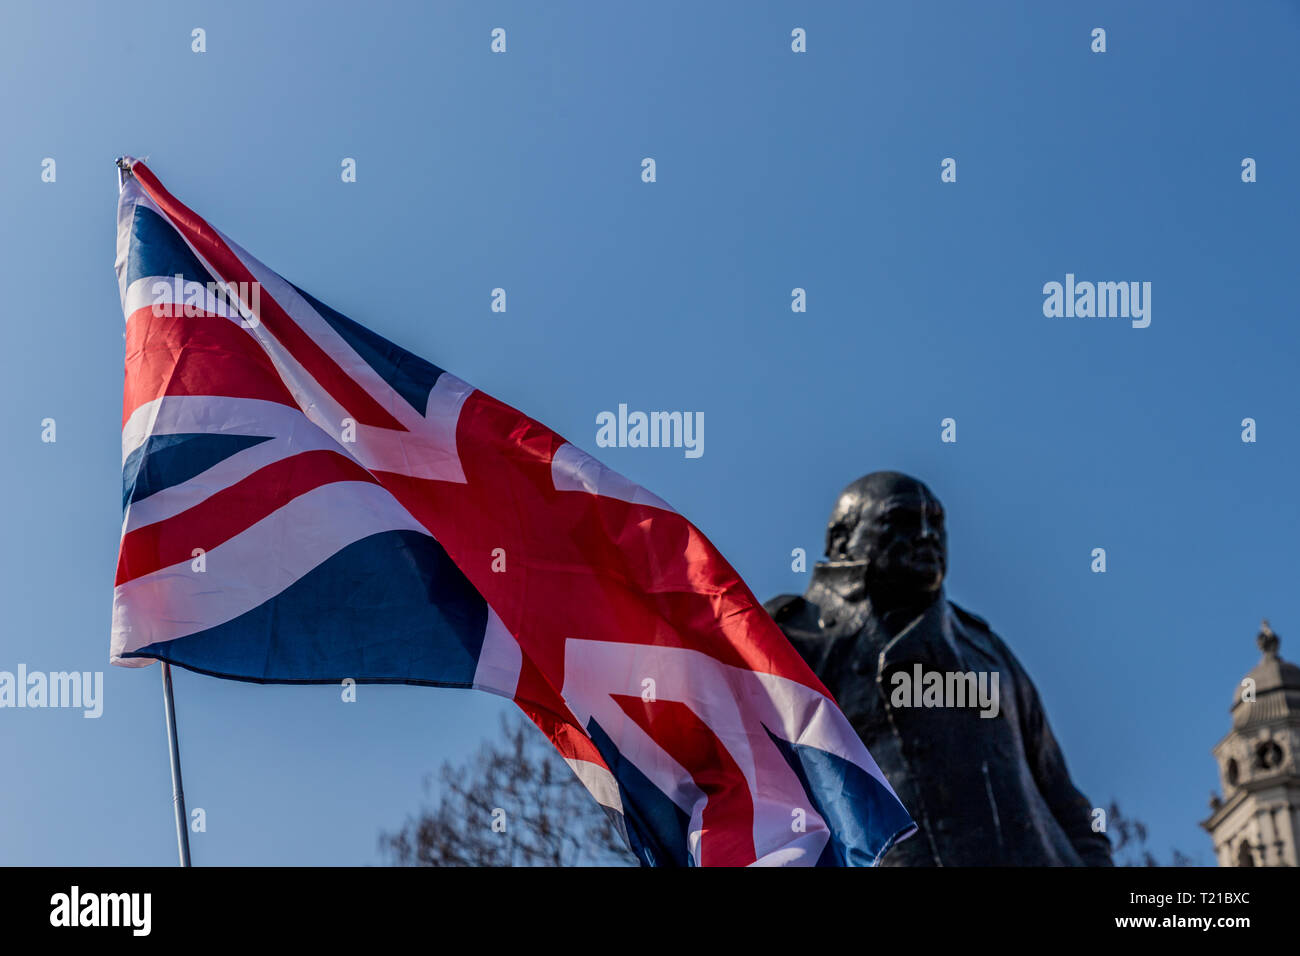 Westminster, London, UK. 29th Mar 2019. The march to leave the EU by Brexit supporters, took place at Parliament Square in Westminster, on Friday 29 March 2019. Credit: chrispictures/Alamy Live News Stock Photo